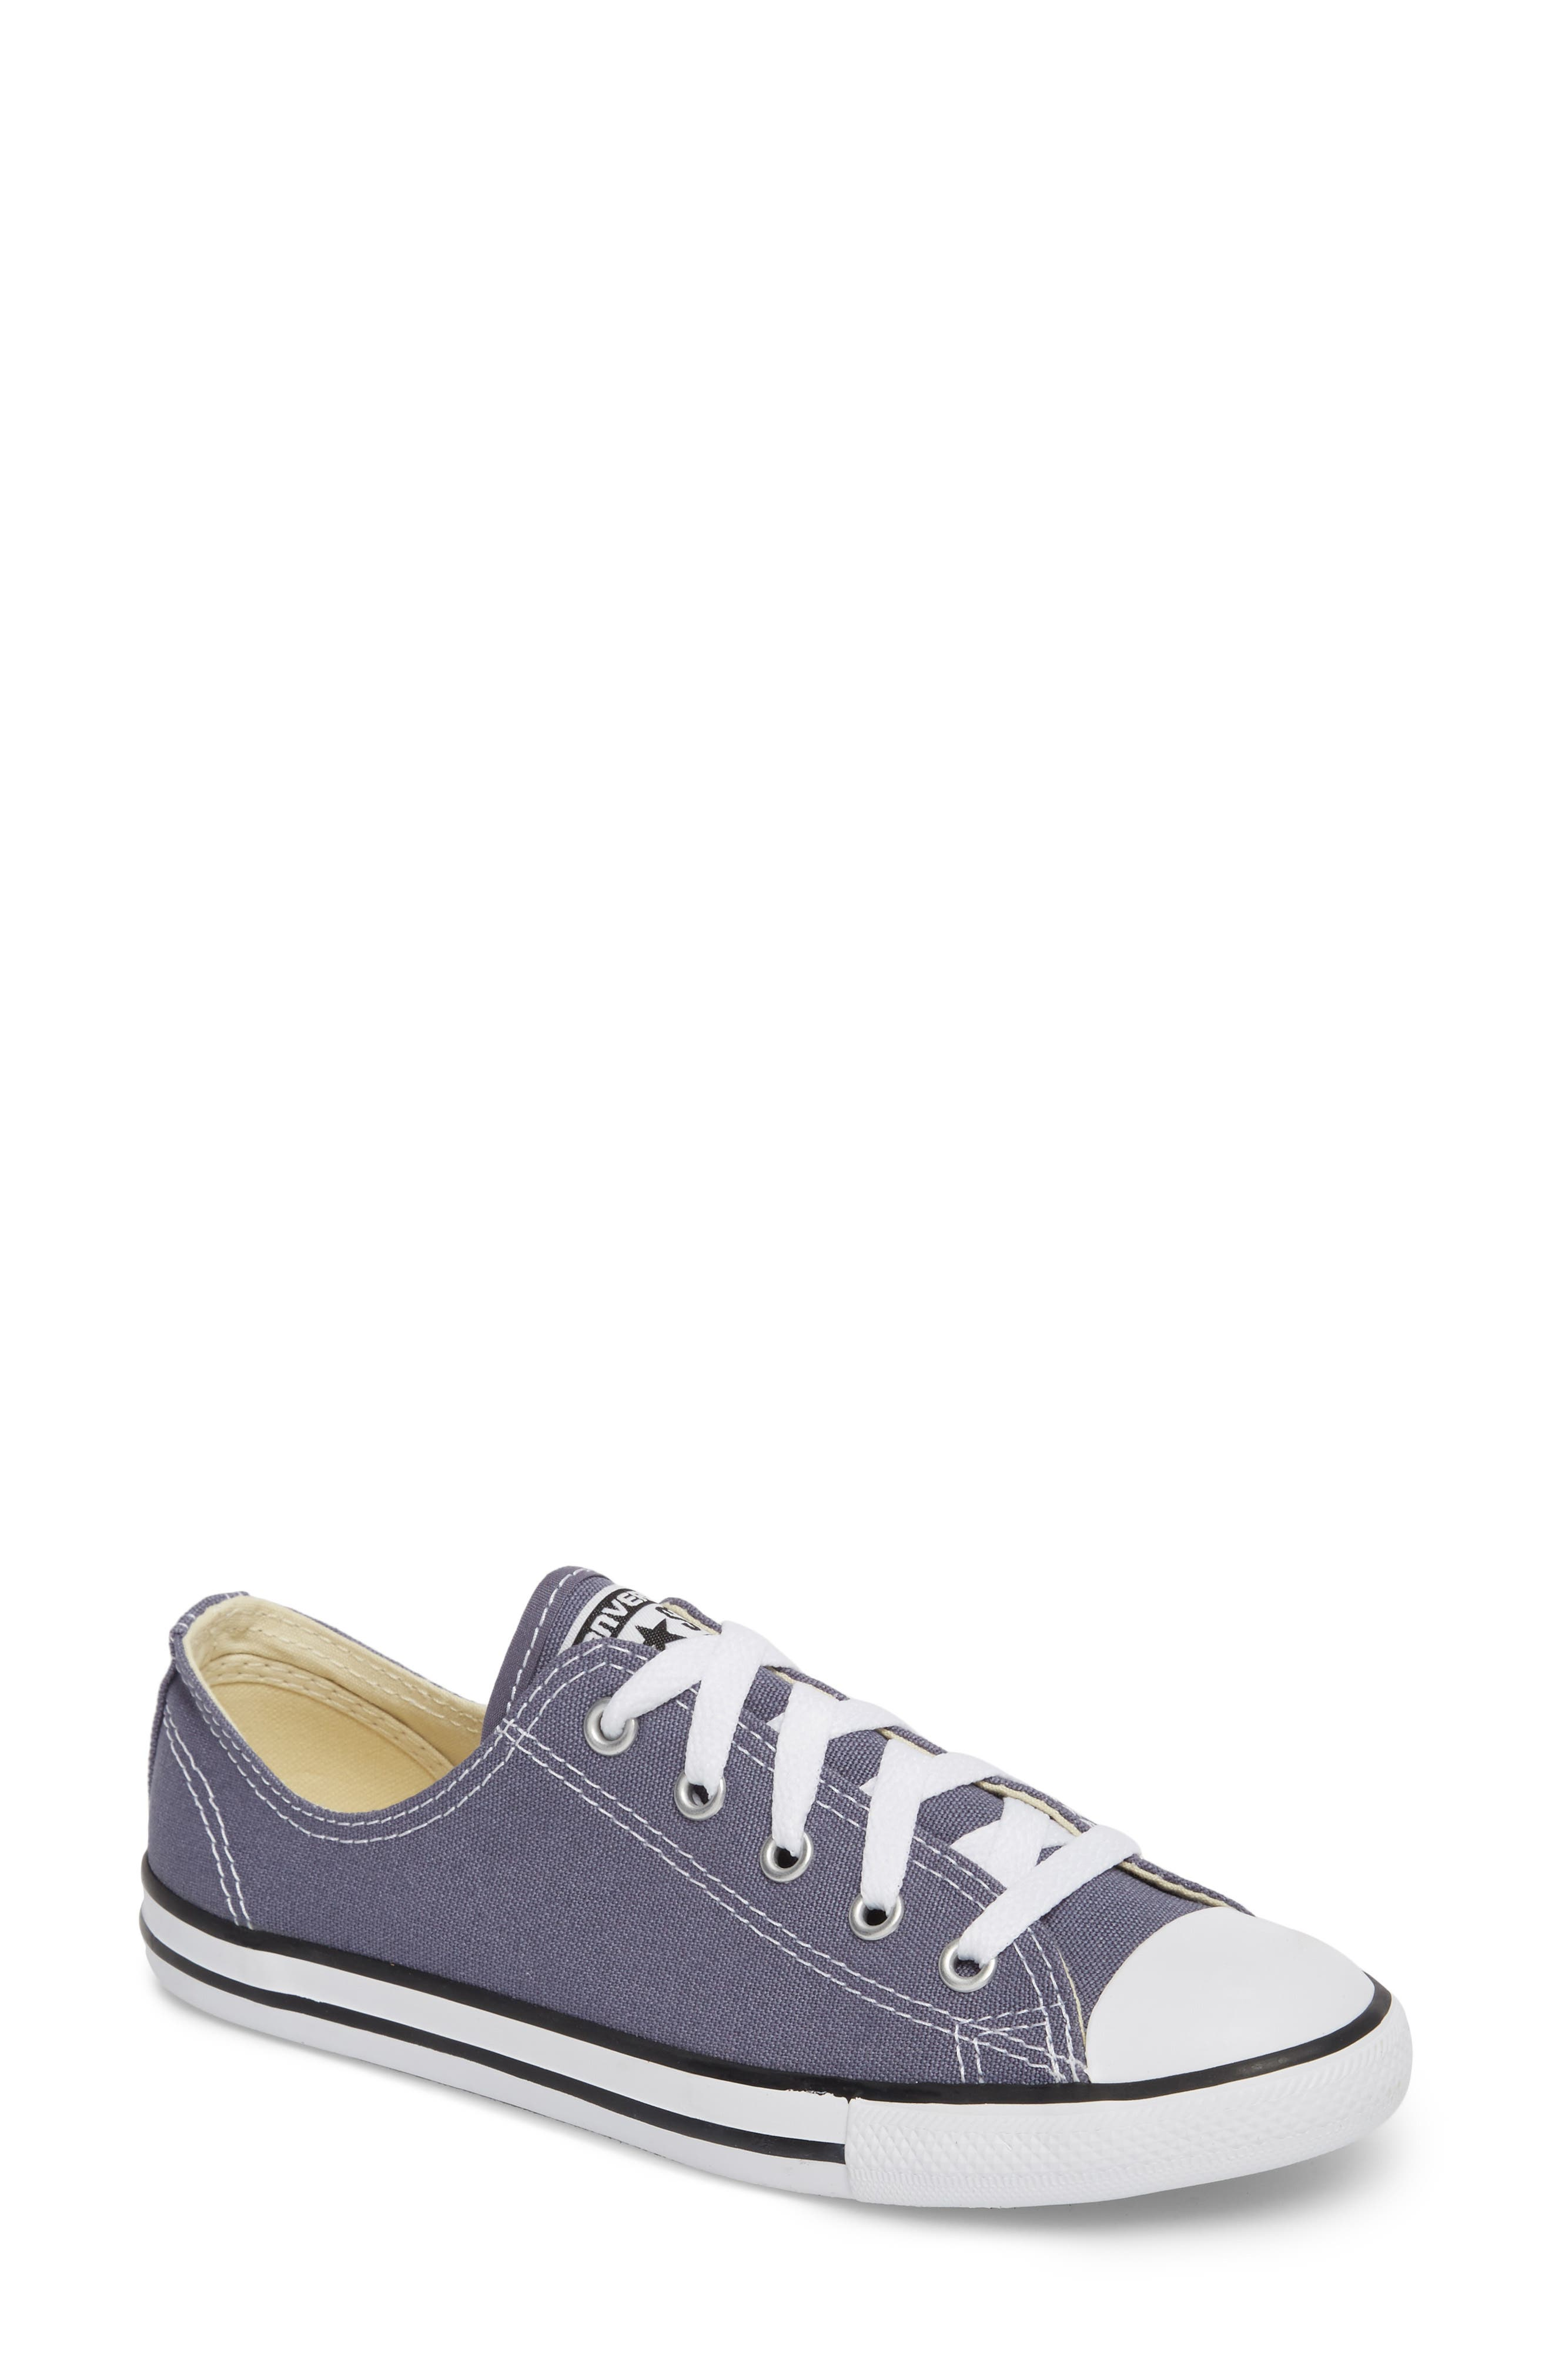 Chuck Taylor<sup>®</sup> All Star<sup>®</sup> Dainty Ox Low Top Sneaker,                             Main thumbnail 1, color,                             023